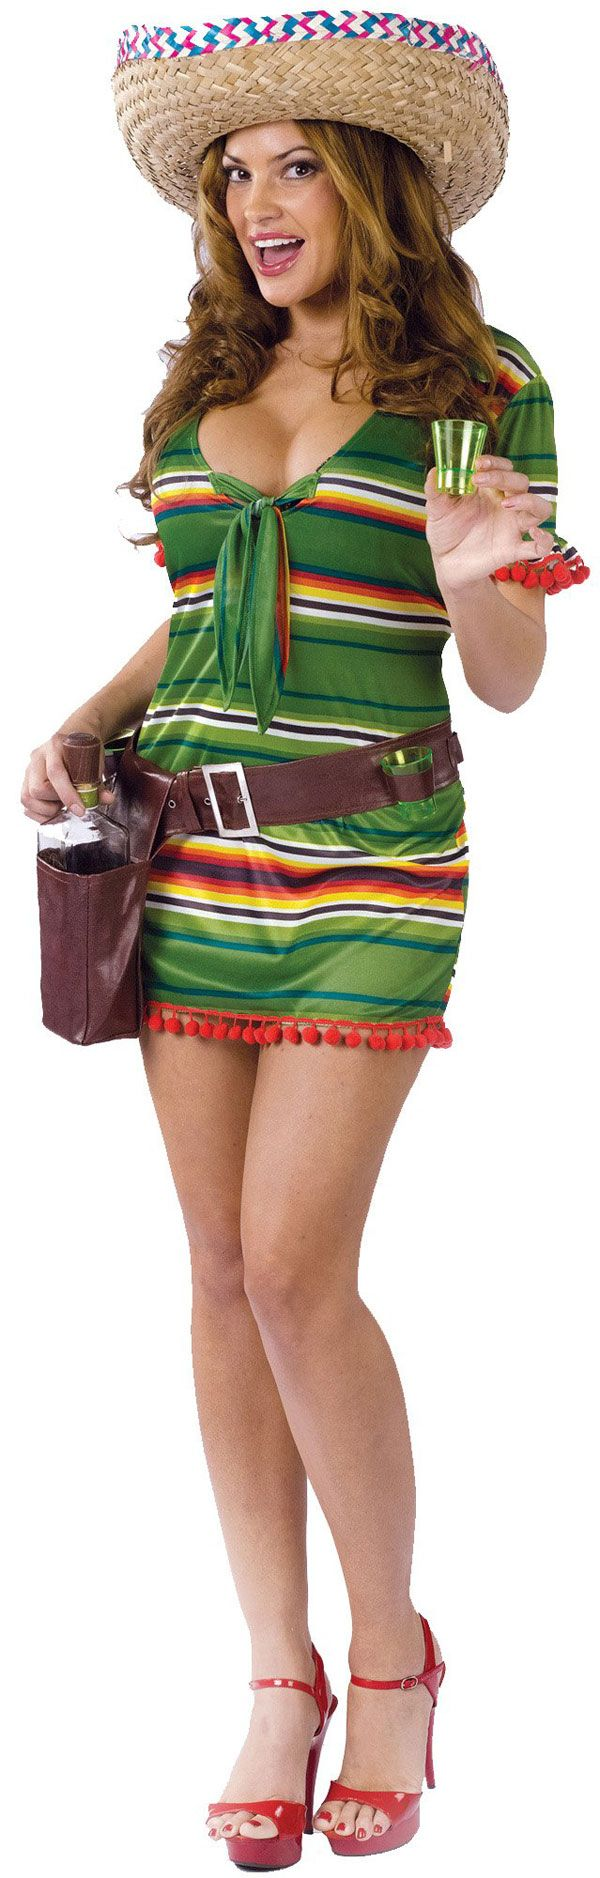 17 best ideas about Mexican Costume on Pinterest | Mexican dresses Mexican clothing and Costumes